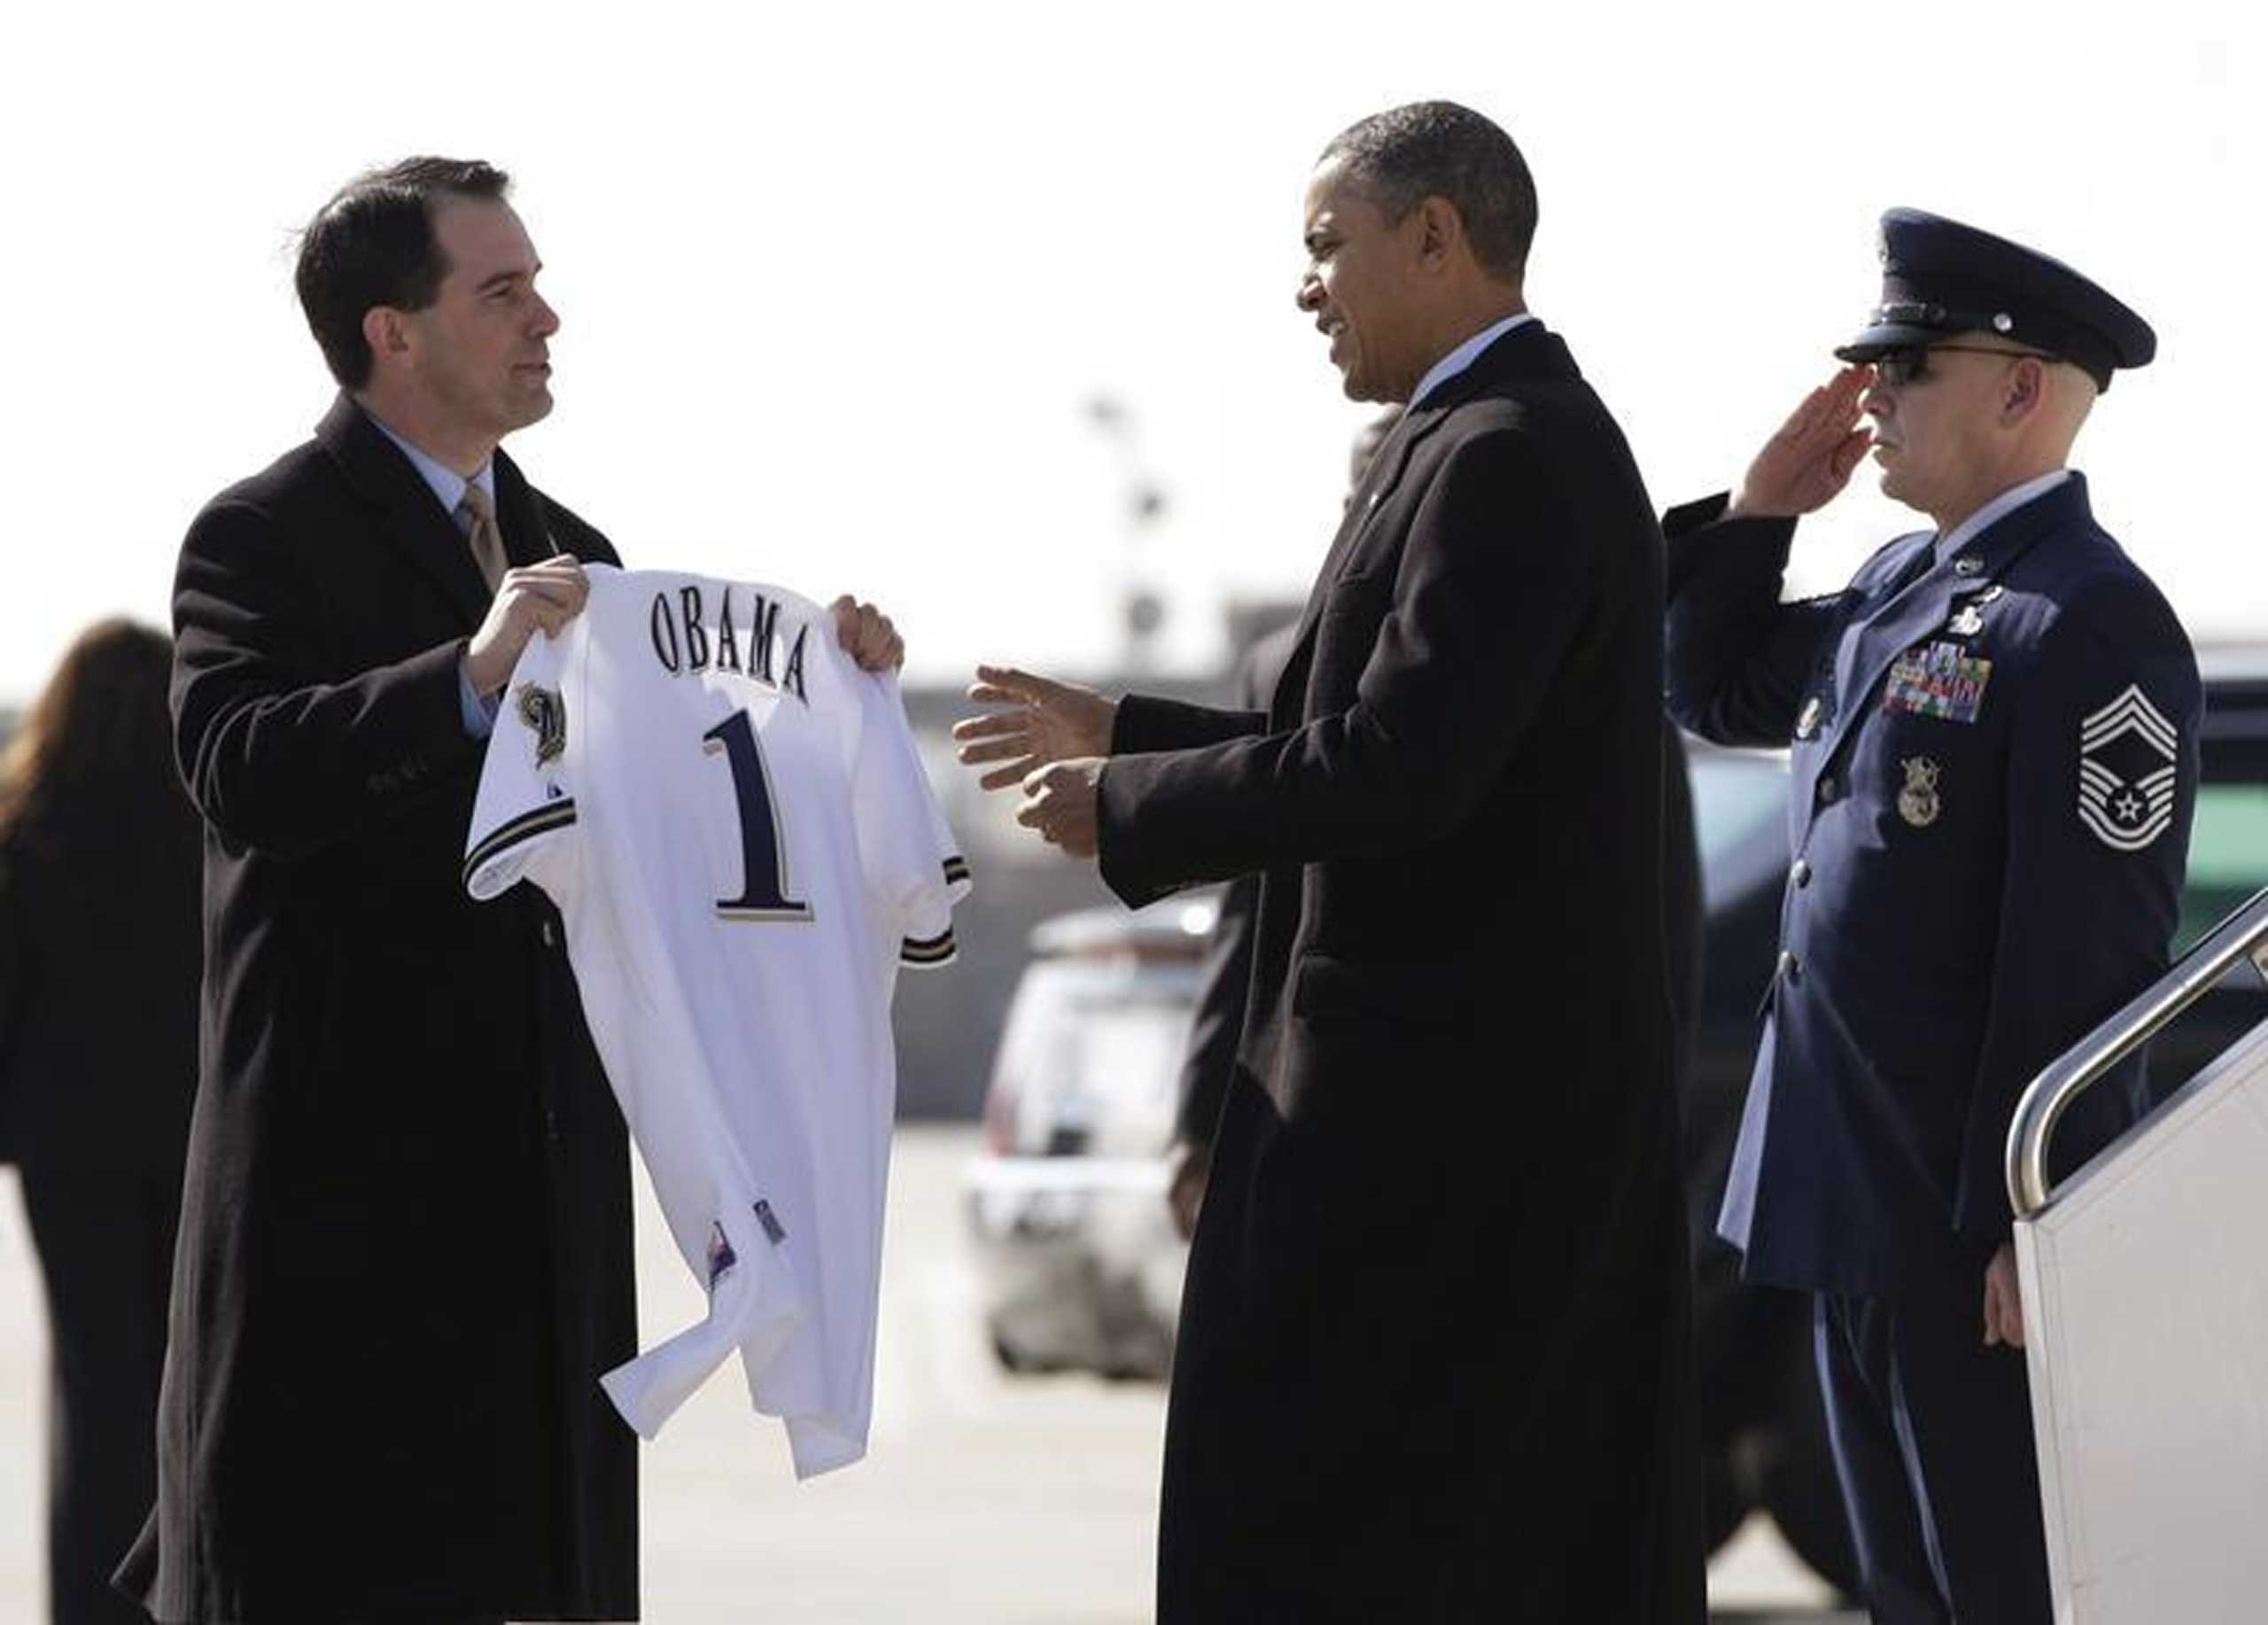 Wisconsin Governor Scott Walker presents U.S. President Barack Obama with a Milwaukee Brewers jersey upon his arrival in Milwaukee, Wis., on Feb. 15, 2012.